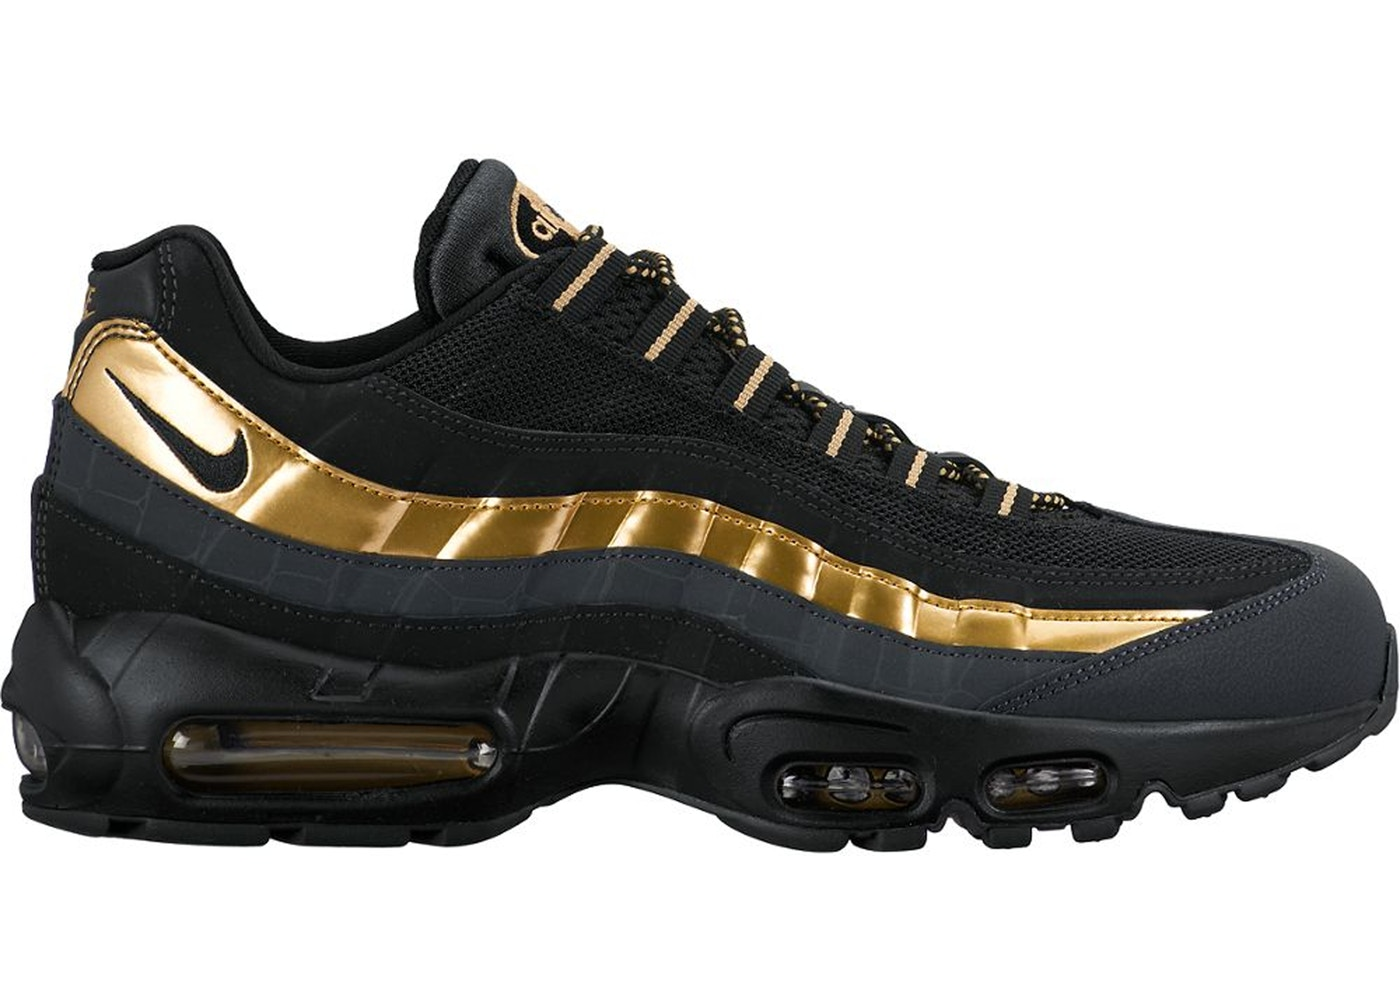 best service bb296 e8266 Nike Air Max 95 Black Metallic Gold  Anthracite-38416007